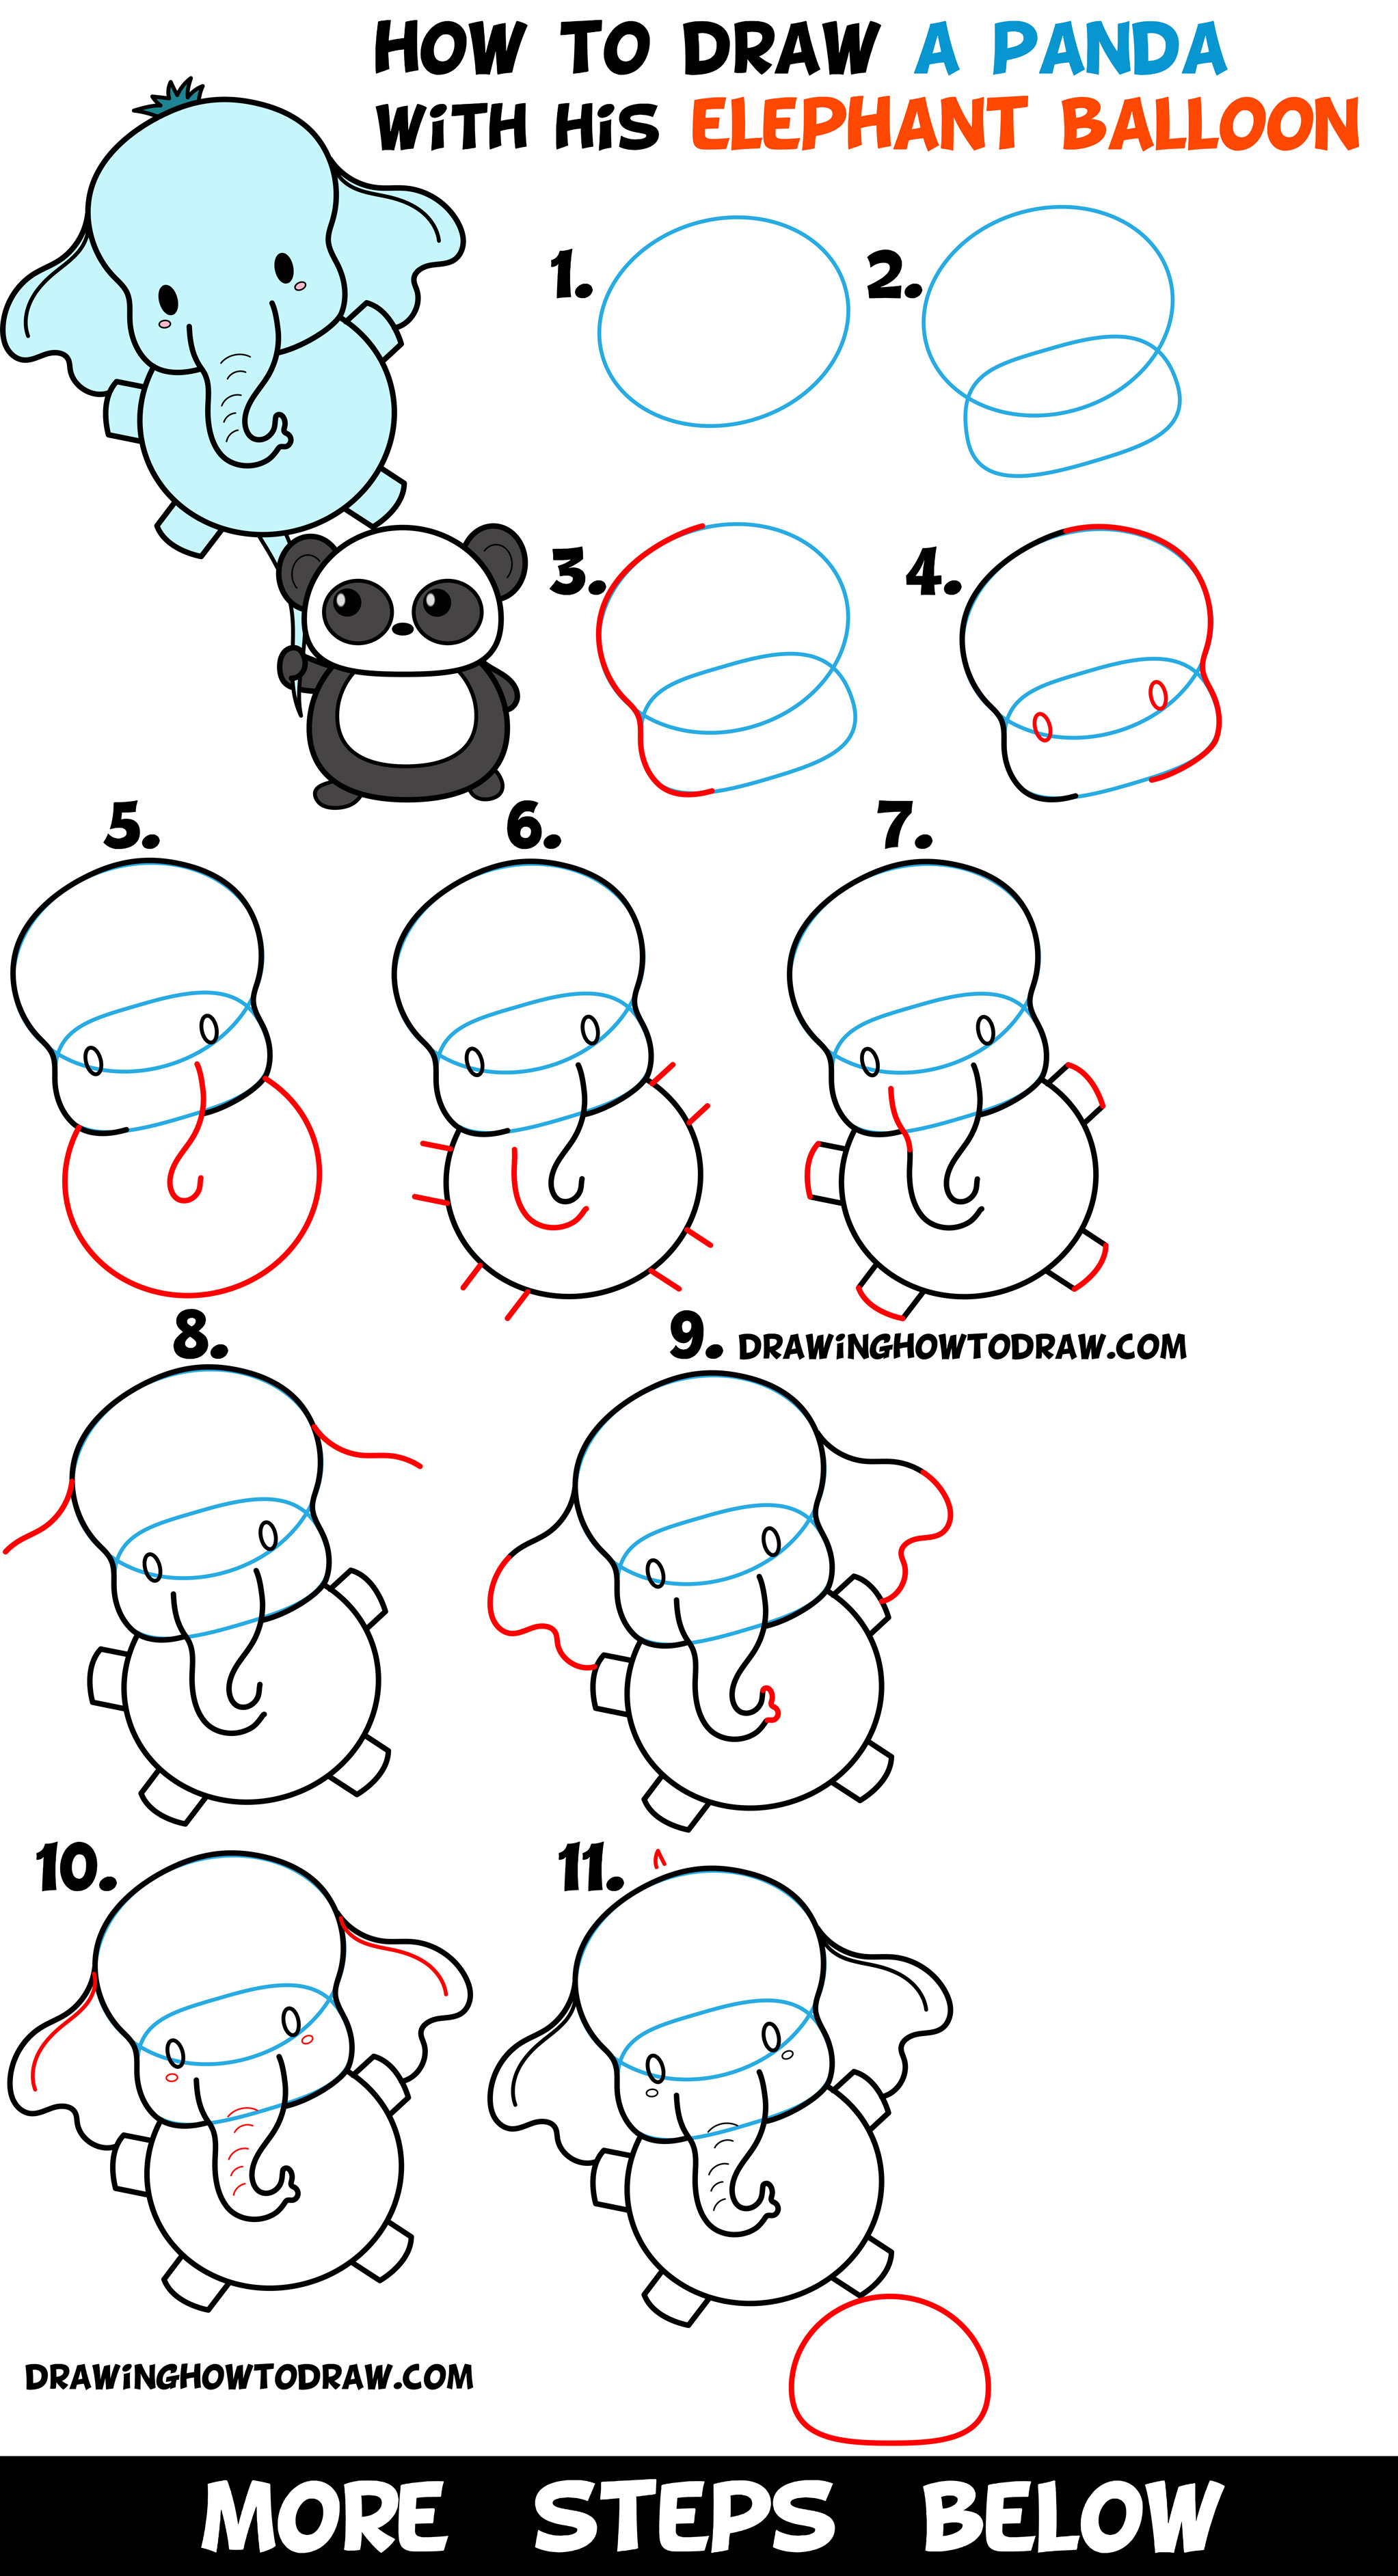 How to Draw a Kawaii Panda Bear Holding an Elephant Balloon Easy Step by Step Drawing Tutorial for Kids